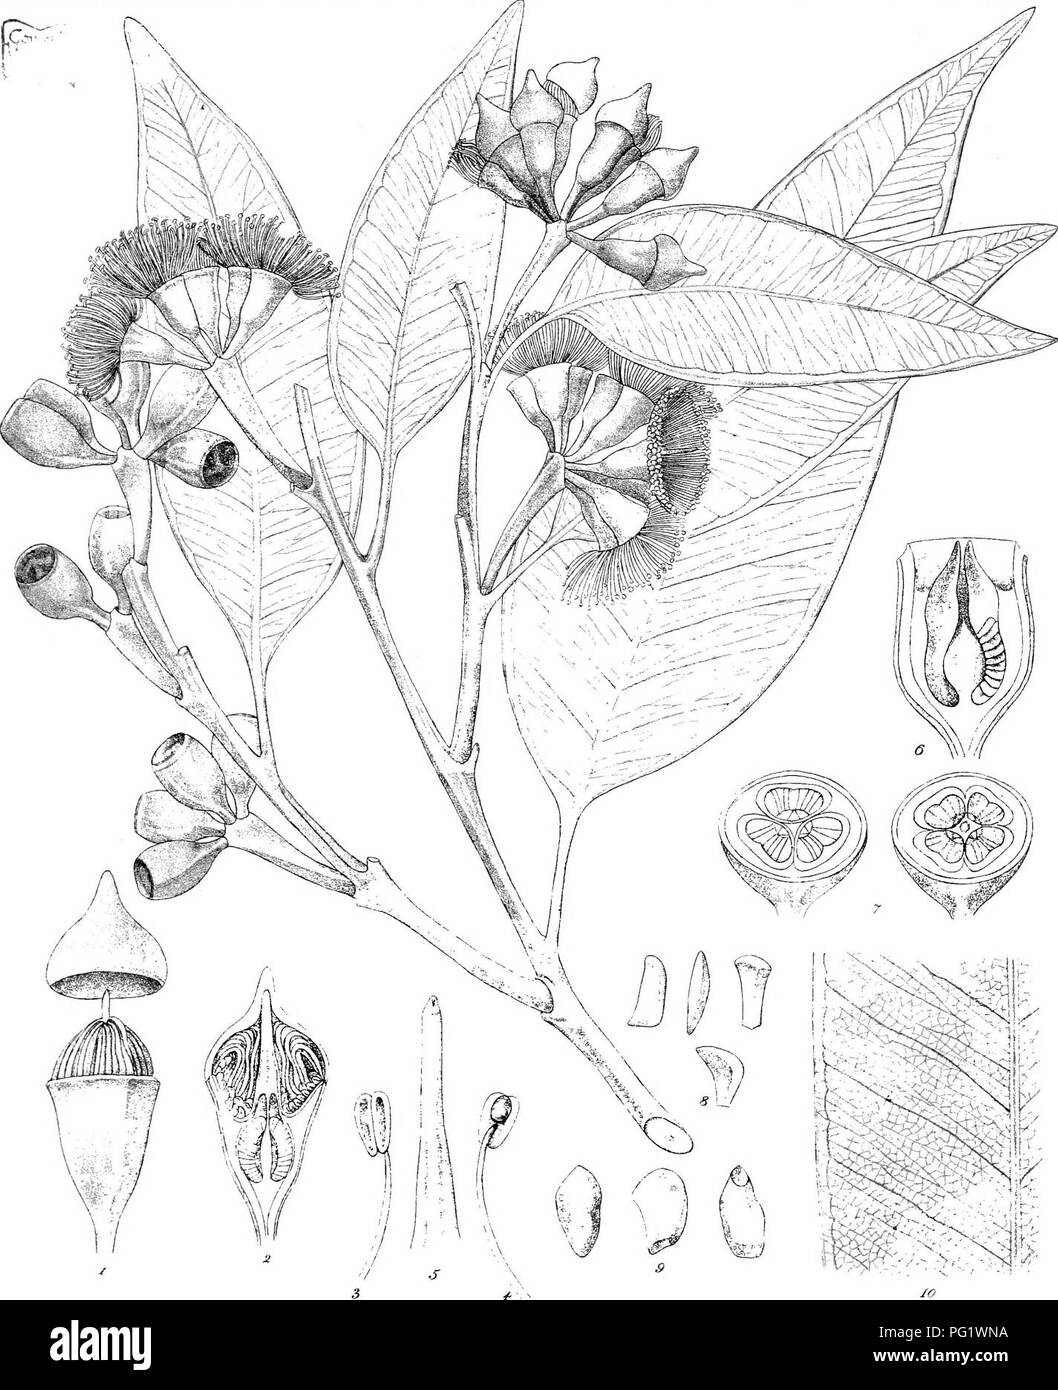 """. Eucalyptographia. A descriptive atlas of the eucalypts of Australia and the adjoining islands;. Eucalyptus; Botany. :caiae:.:TKei£:s.:-Li>K r^""""T l iipsxi^ Steam Litlio GoTr.PrmlmgOffioe.MeH)- Si(giili